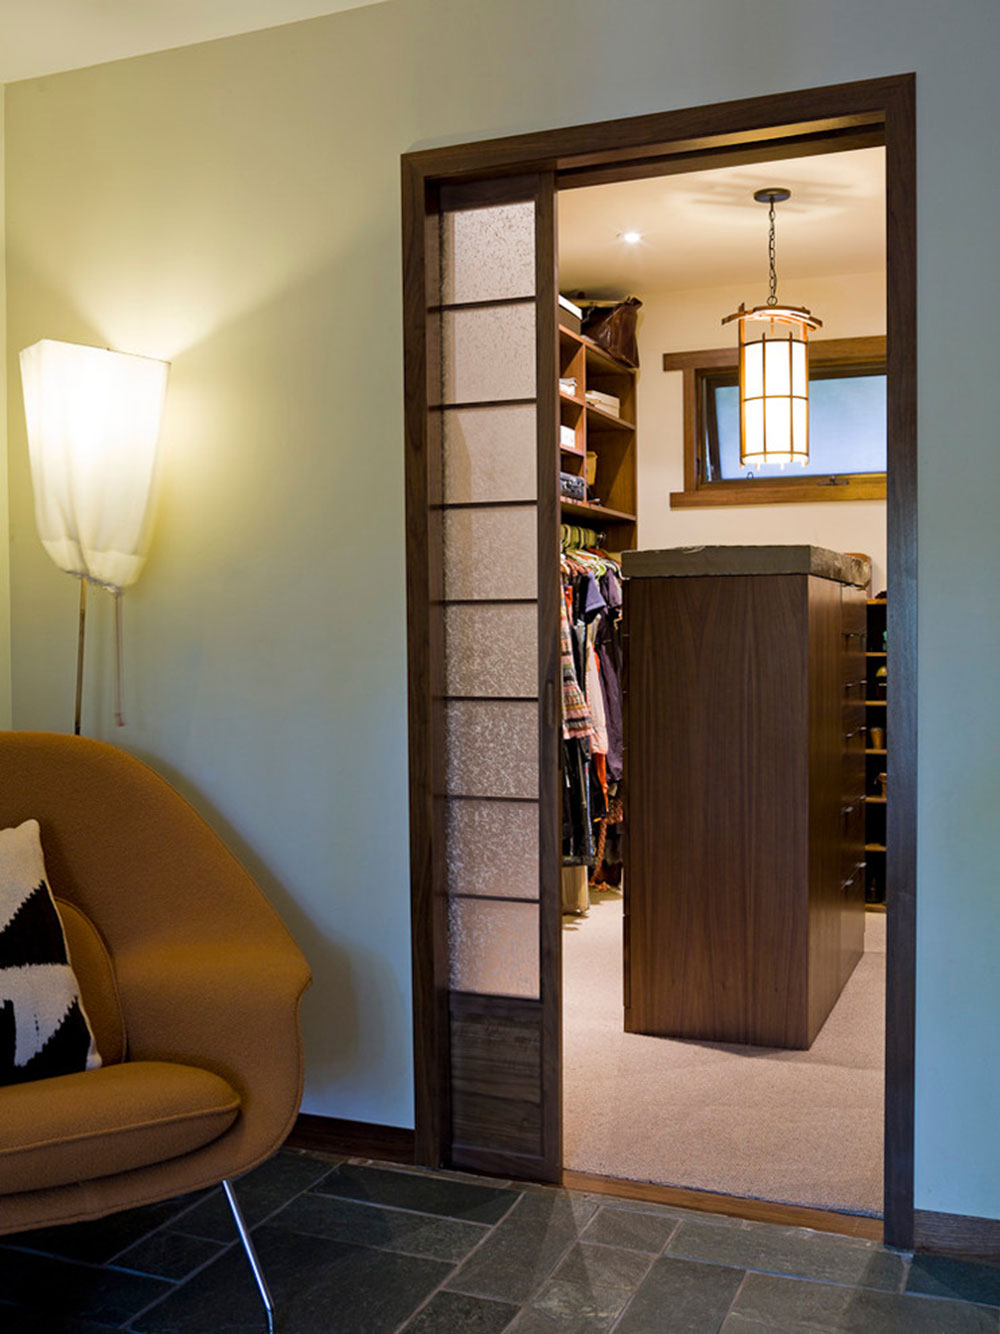 Comfy-Bungalow-by-Angela-Dechard-Design How to cover a closet without doors (inexpensive options)